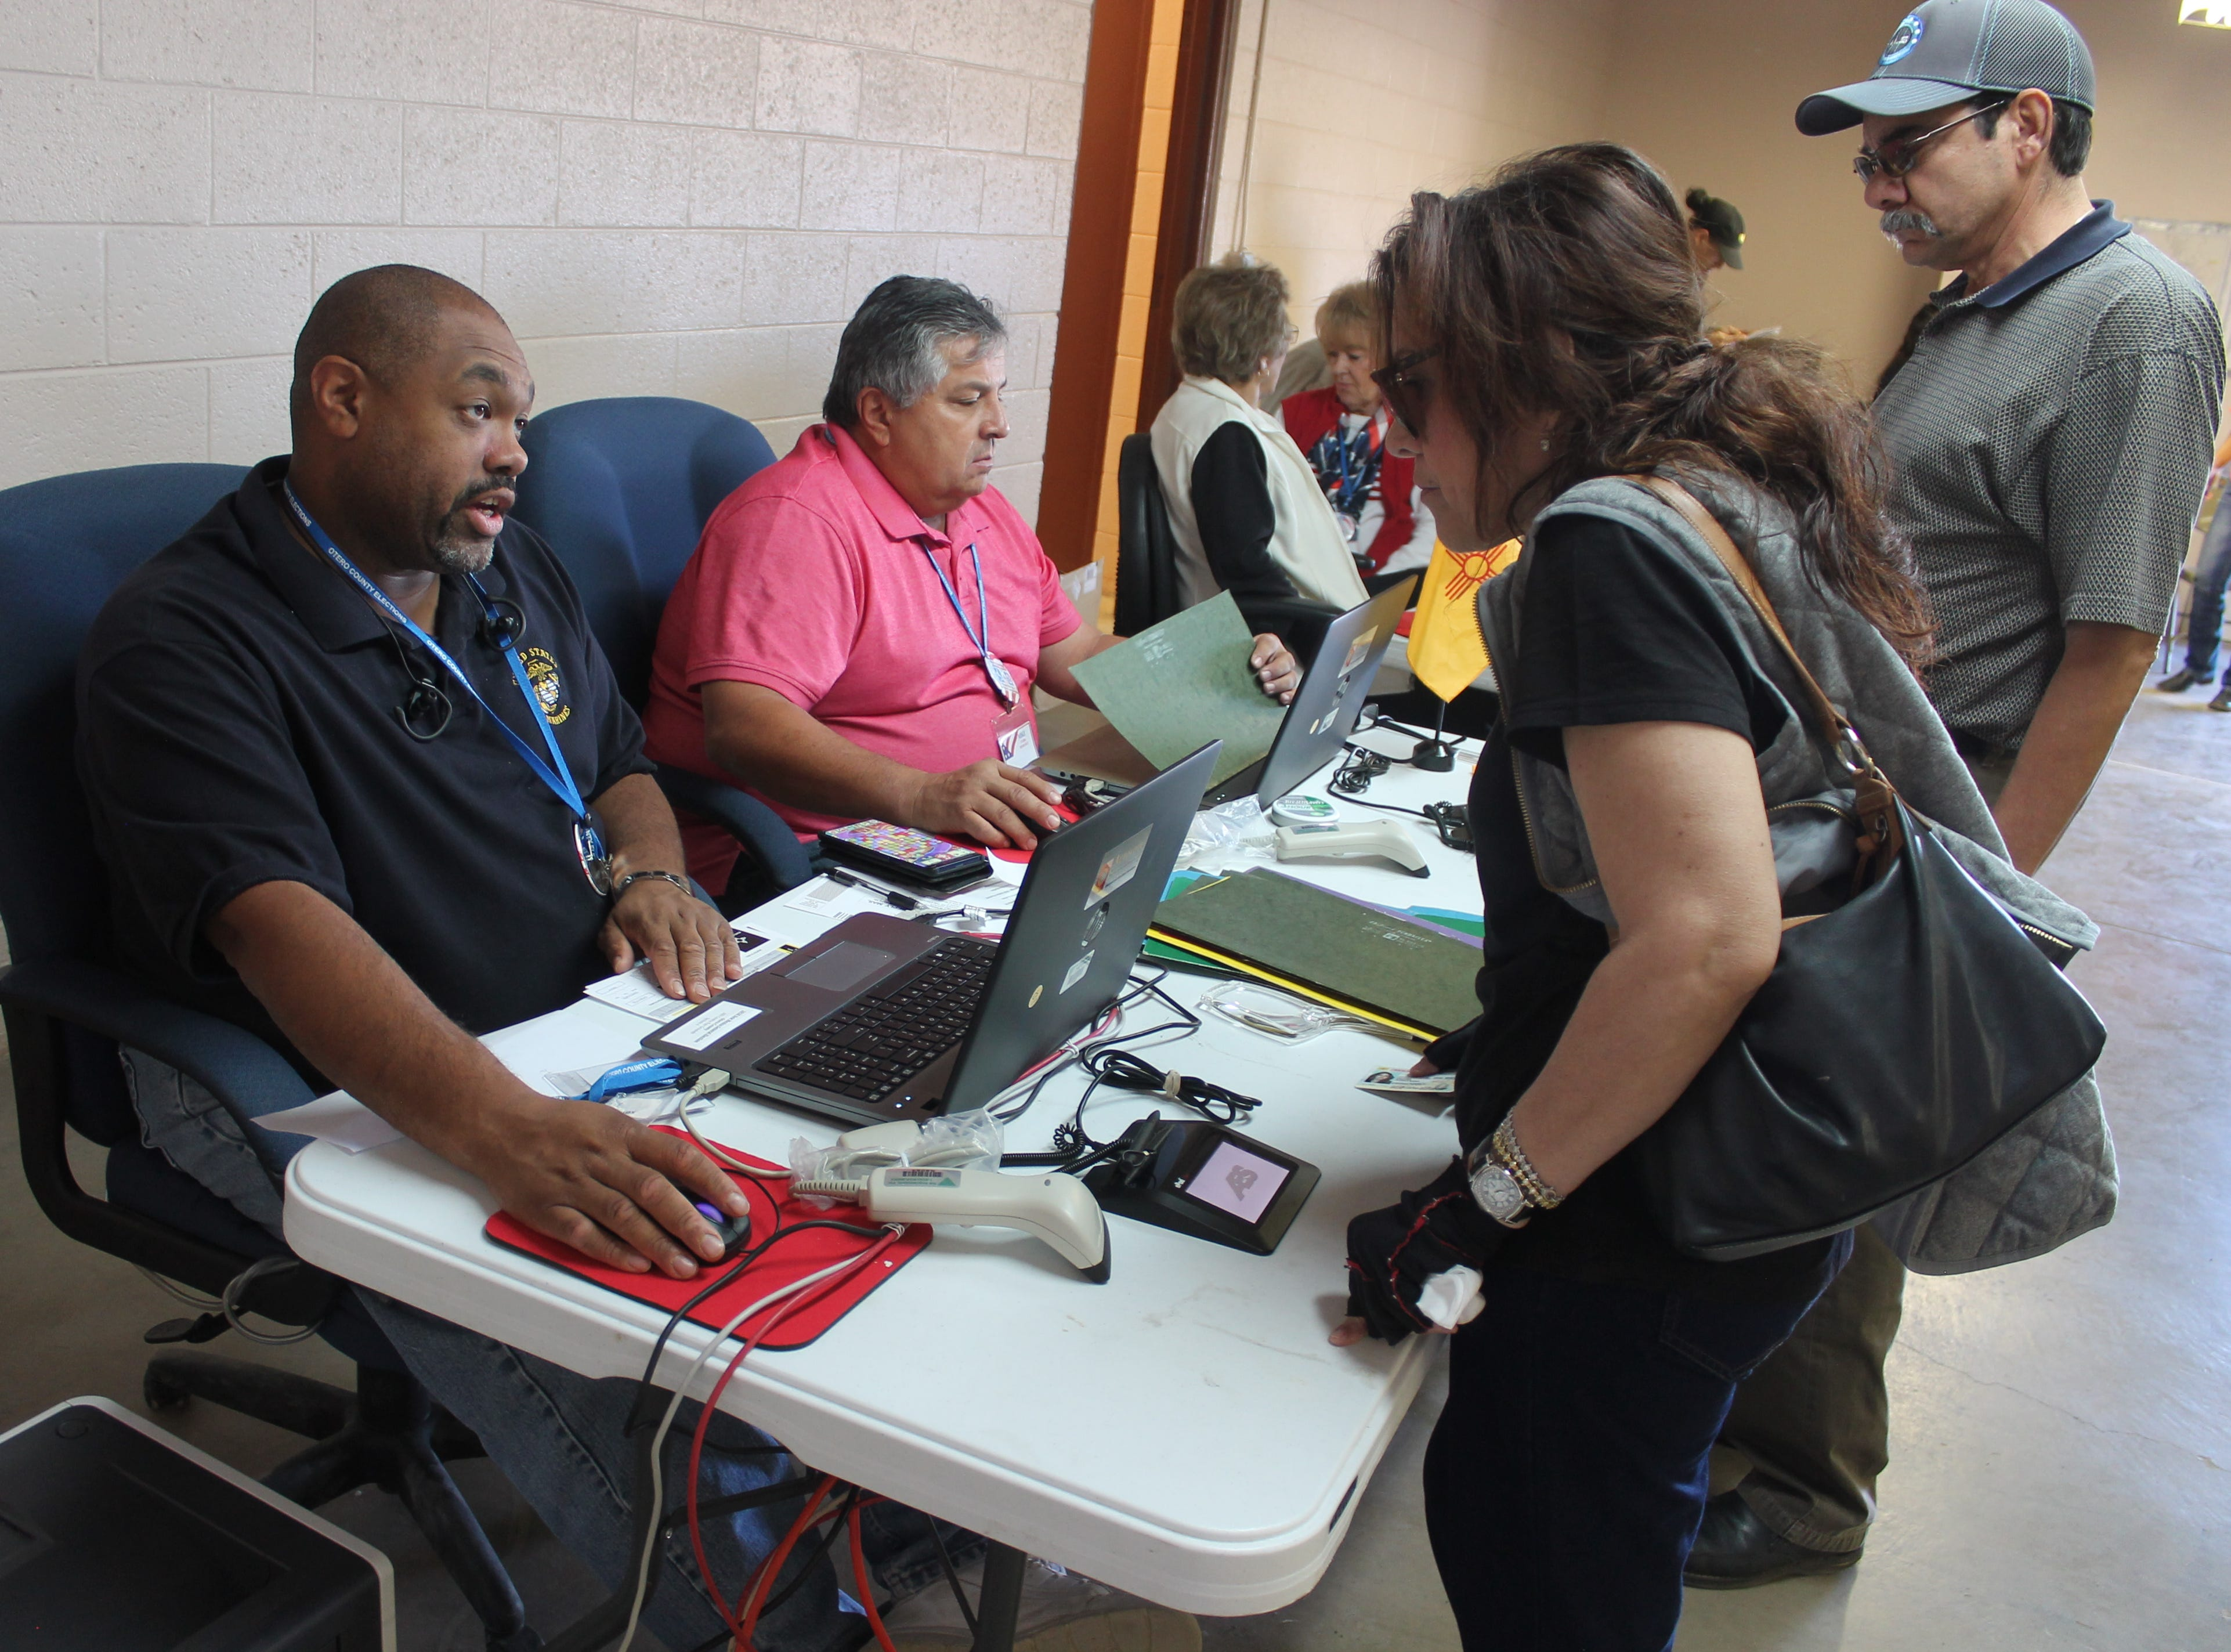 """Everette Brown, left, and Mike Aguirre hand out ballots to Alamogordo residents. The 2018 election was Aguirre's first as a volunteer while Brown has been volunteering as a poll worker since he moved to Alamogordo 11 years ago. """"We've done 654 since 7 this morning,"""" Brown said. """"At one point there was a line going out the door."""""""